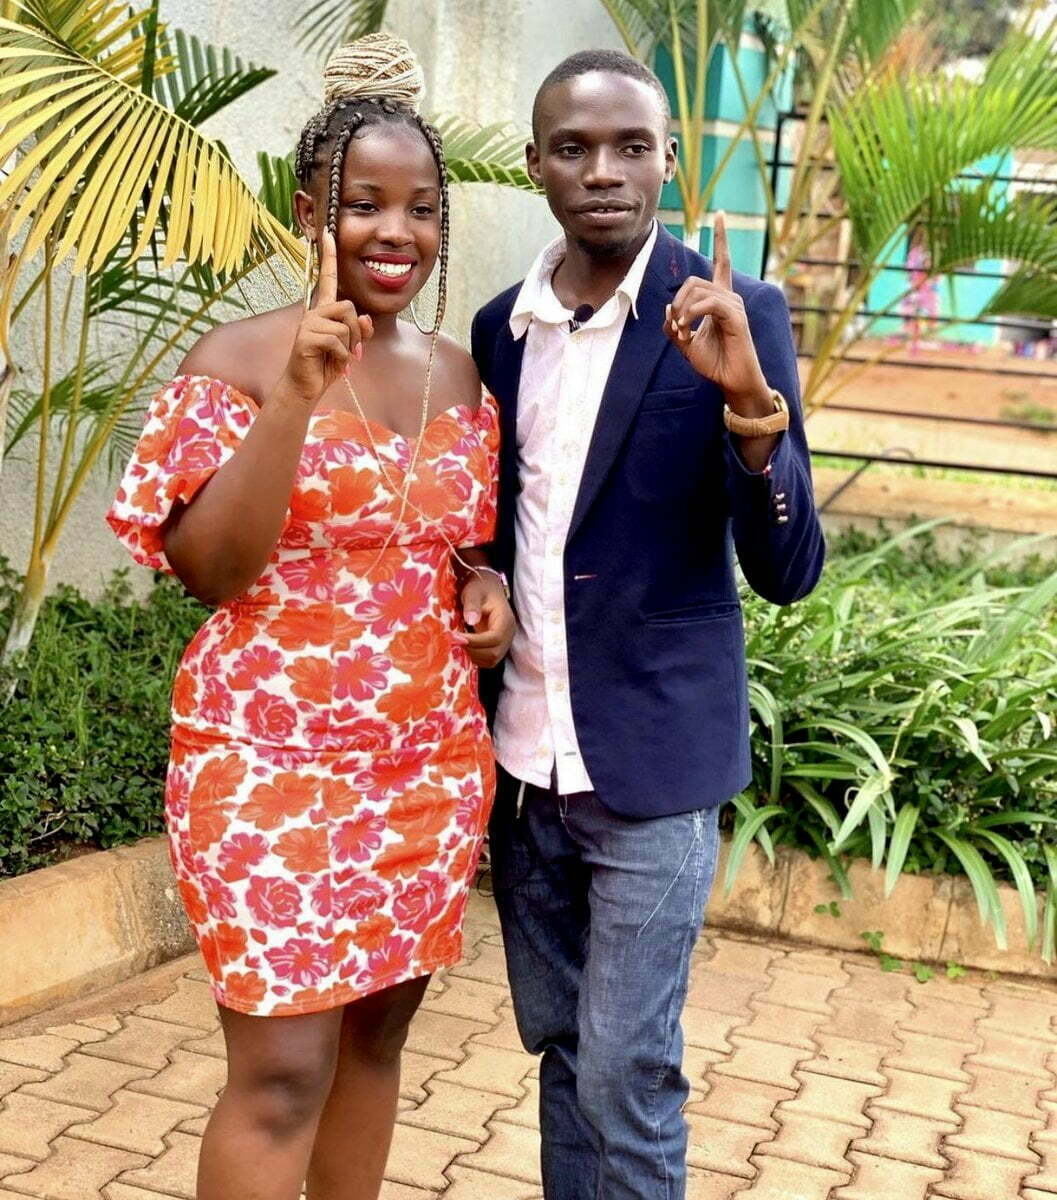 Independent presidential candidate John Katumba takes a selfie with gorgeous lady